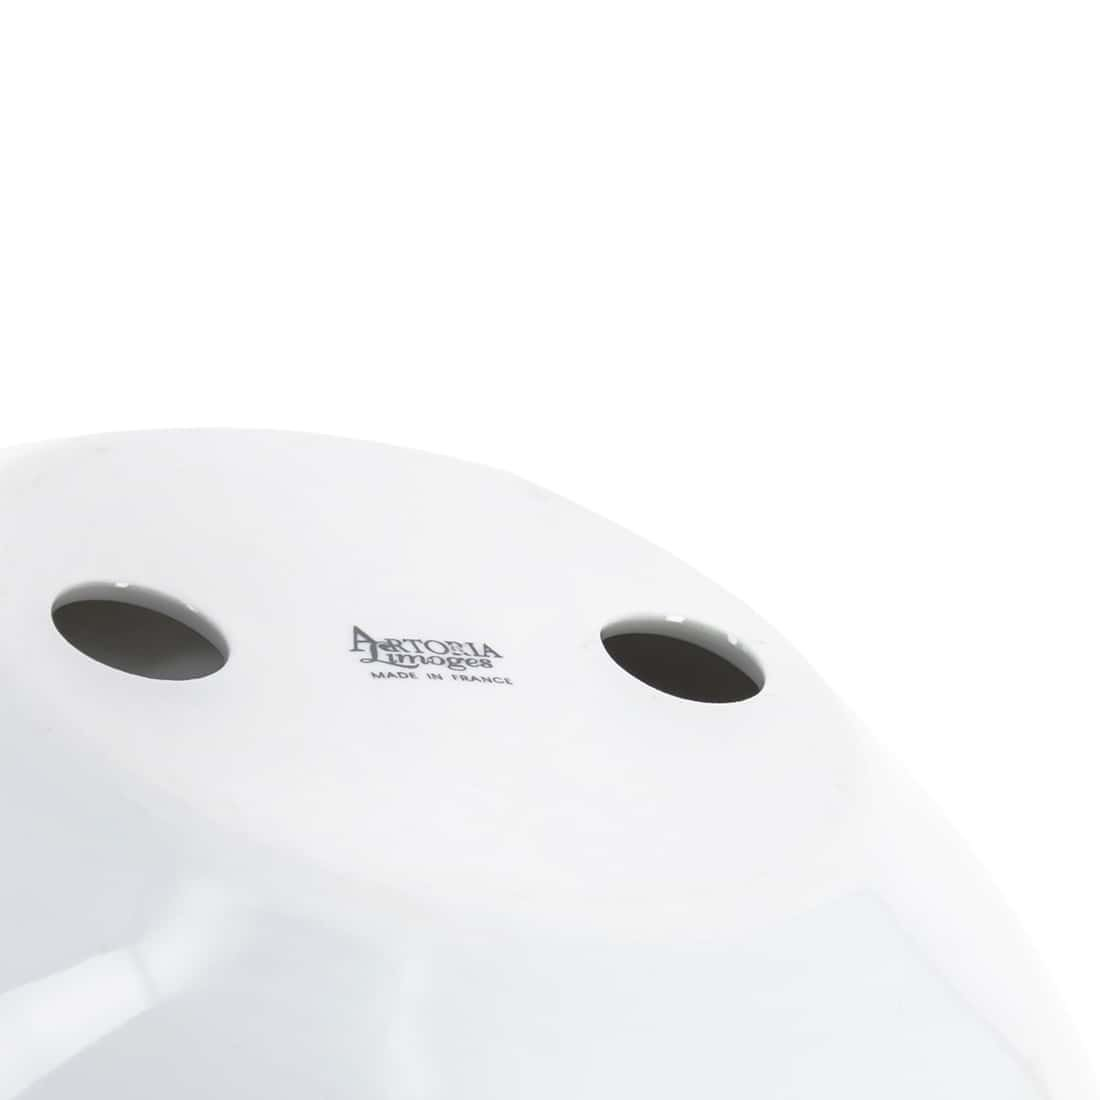 Davidoff White and Silver Porcelain Ashtray by Davidoff (Image #5)